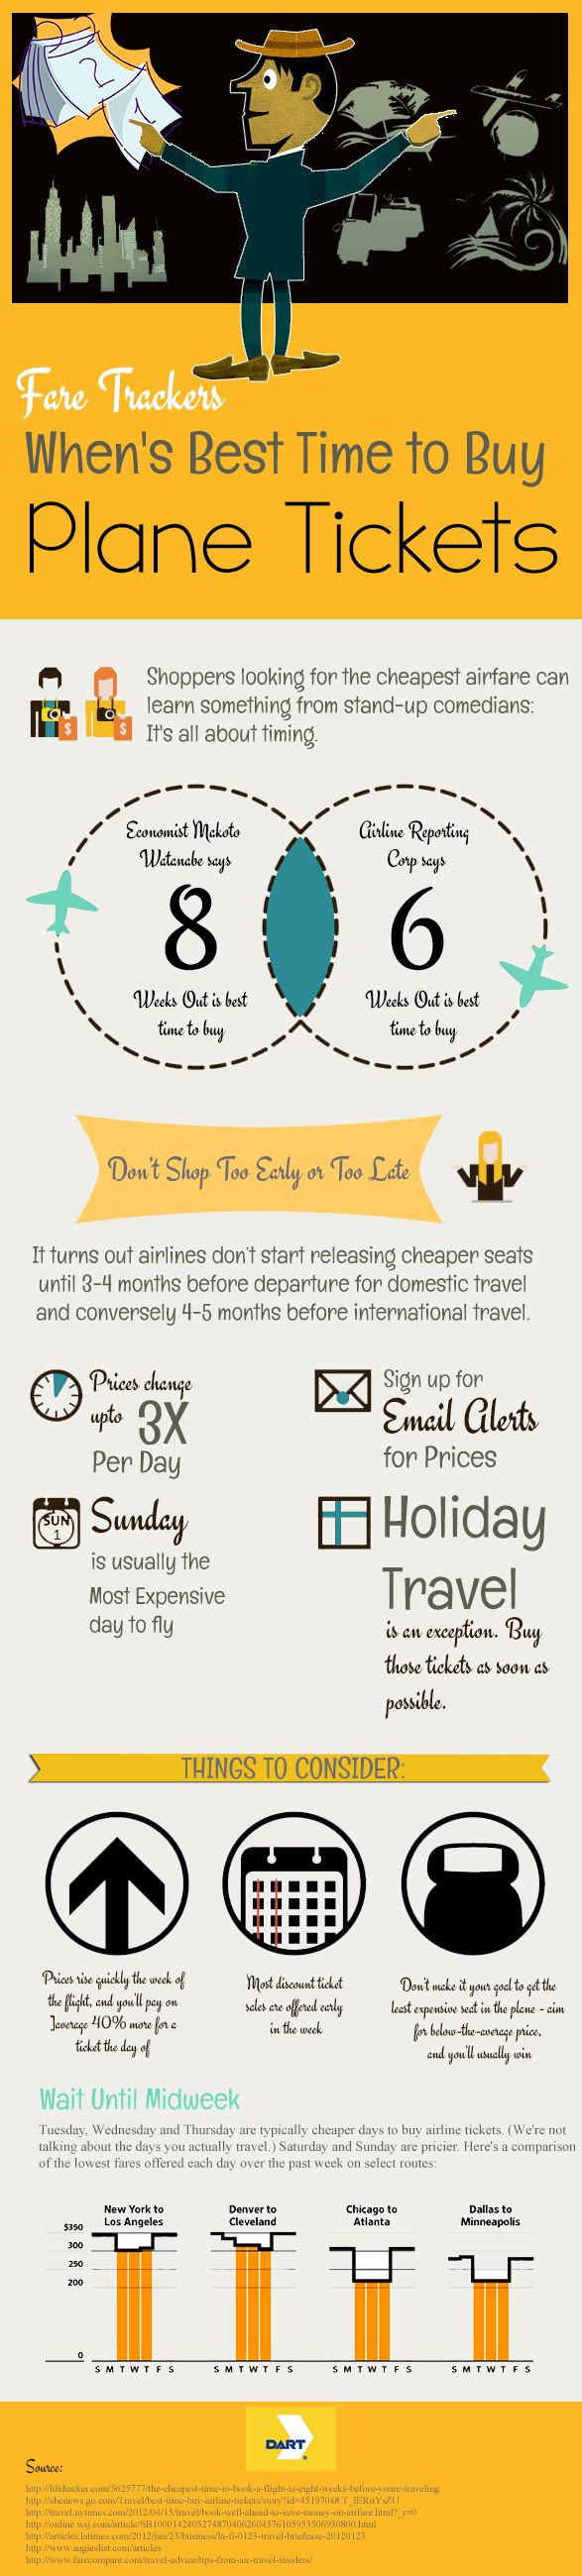 When's The Best Time To Buy Plane Tickets [INFOGRAPHIC] #plane#tickets